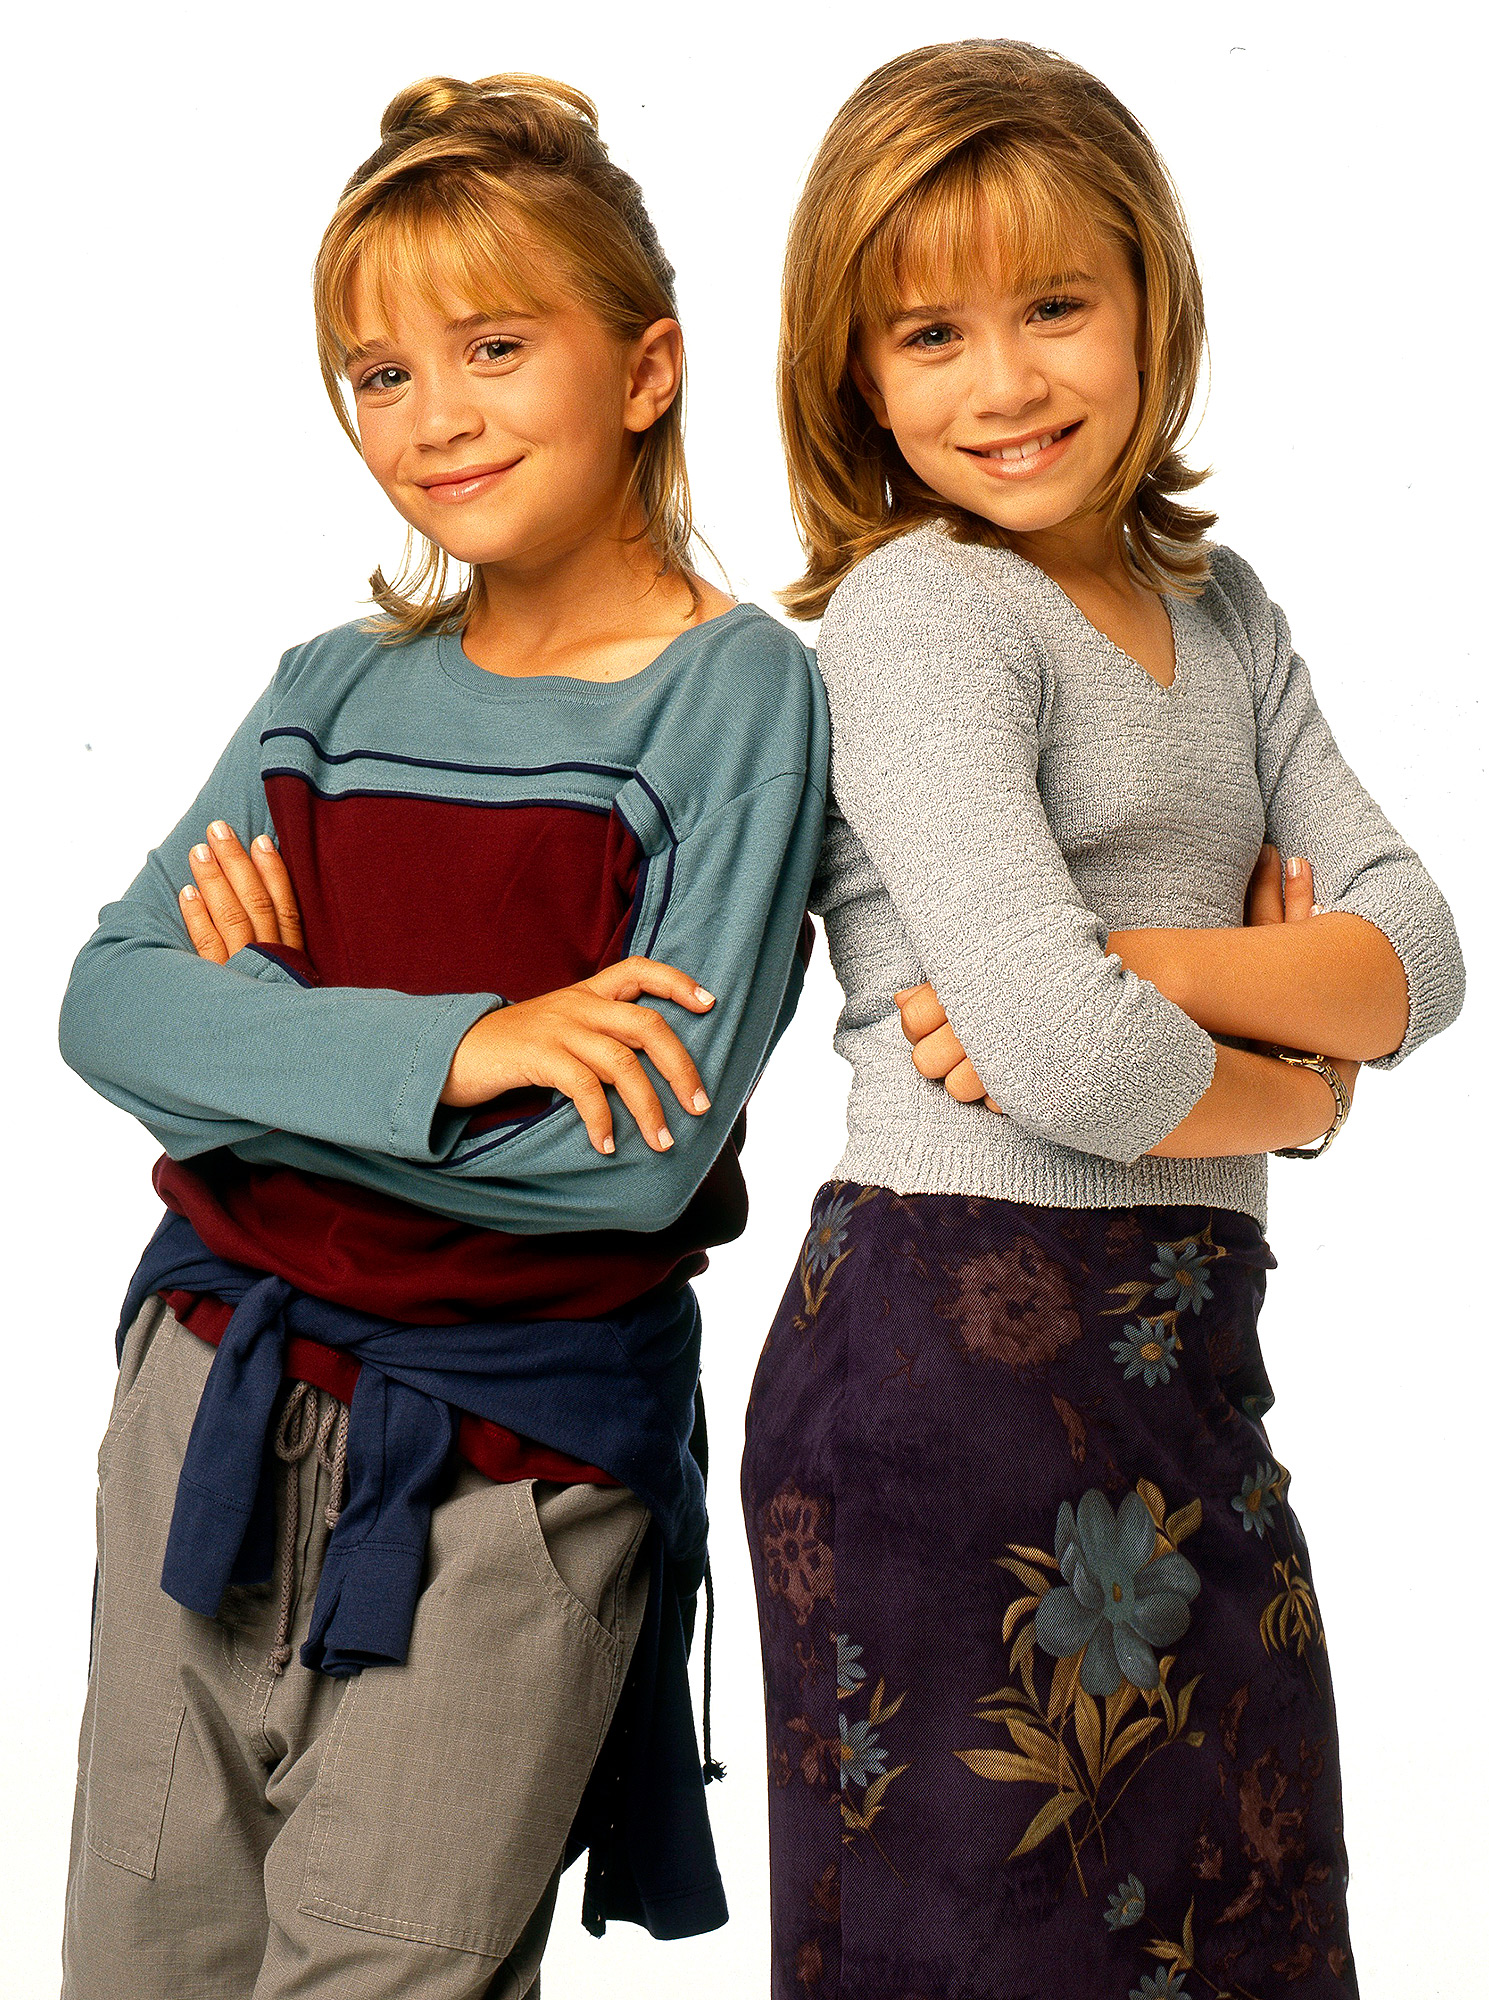 MARY-KATE (L) AND ASHLEY OLSEN